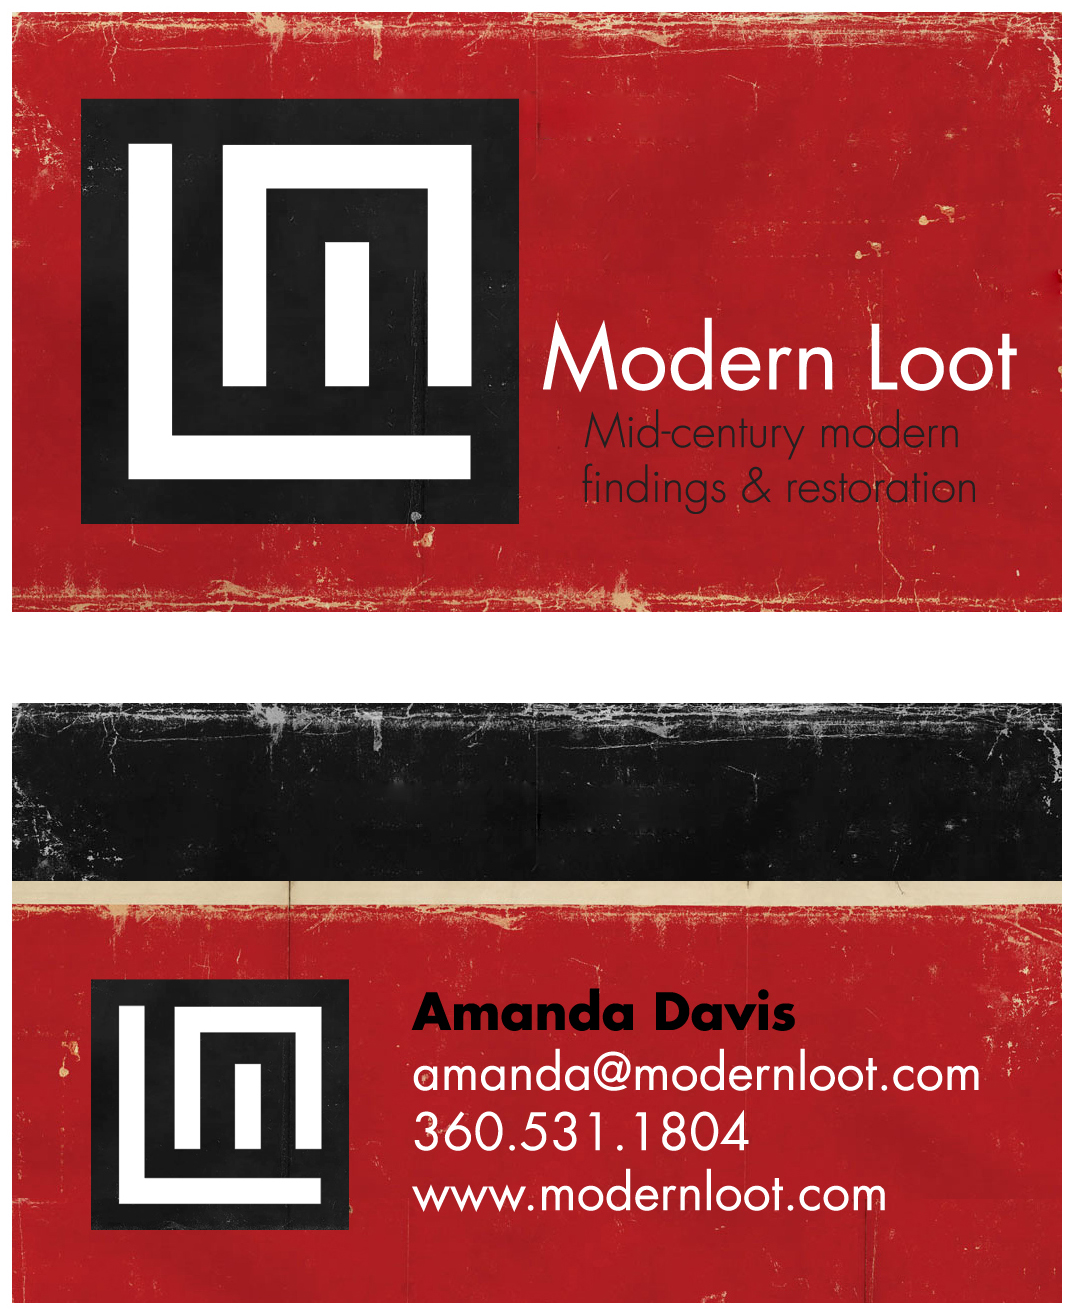 Business cards and print collateral splint media business cards and print collateral logos post image colourmoves